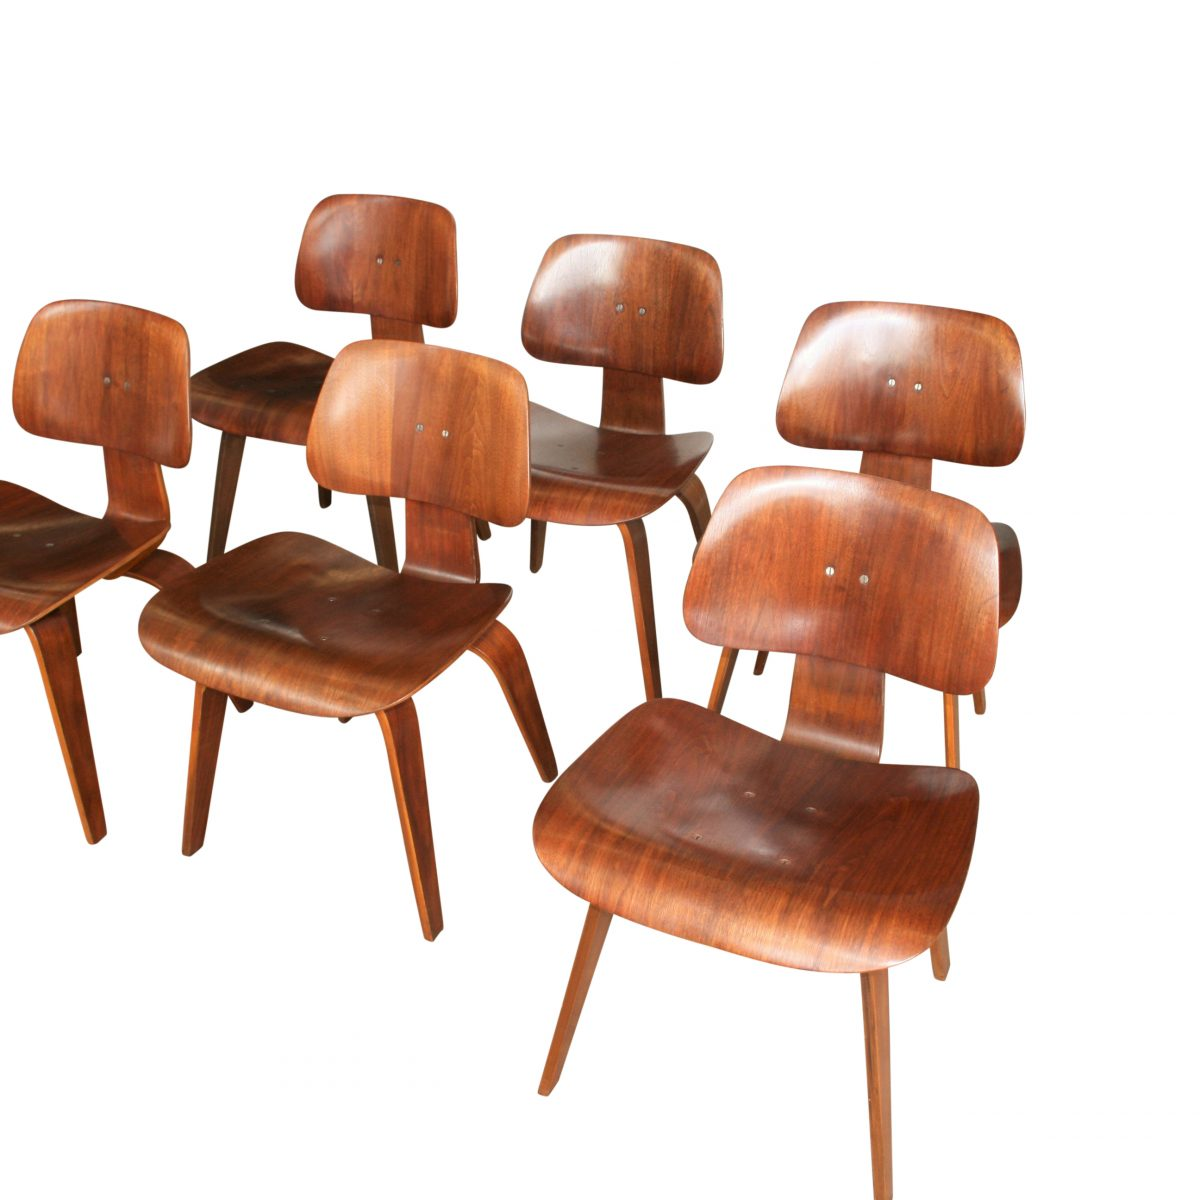 Eames Herman Miller lounge chairs/williamsantiques